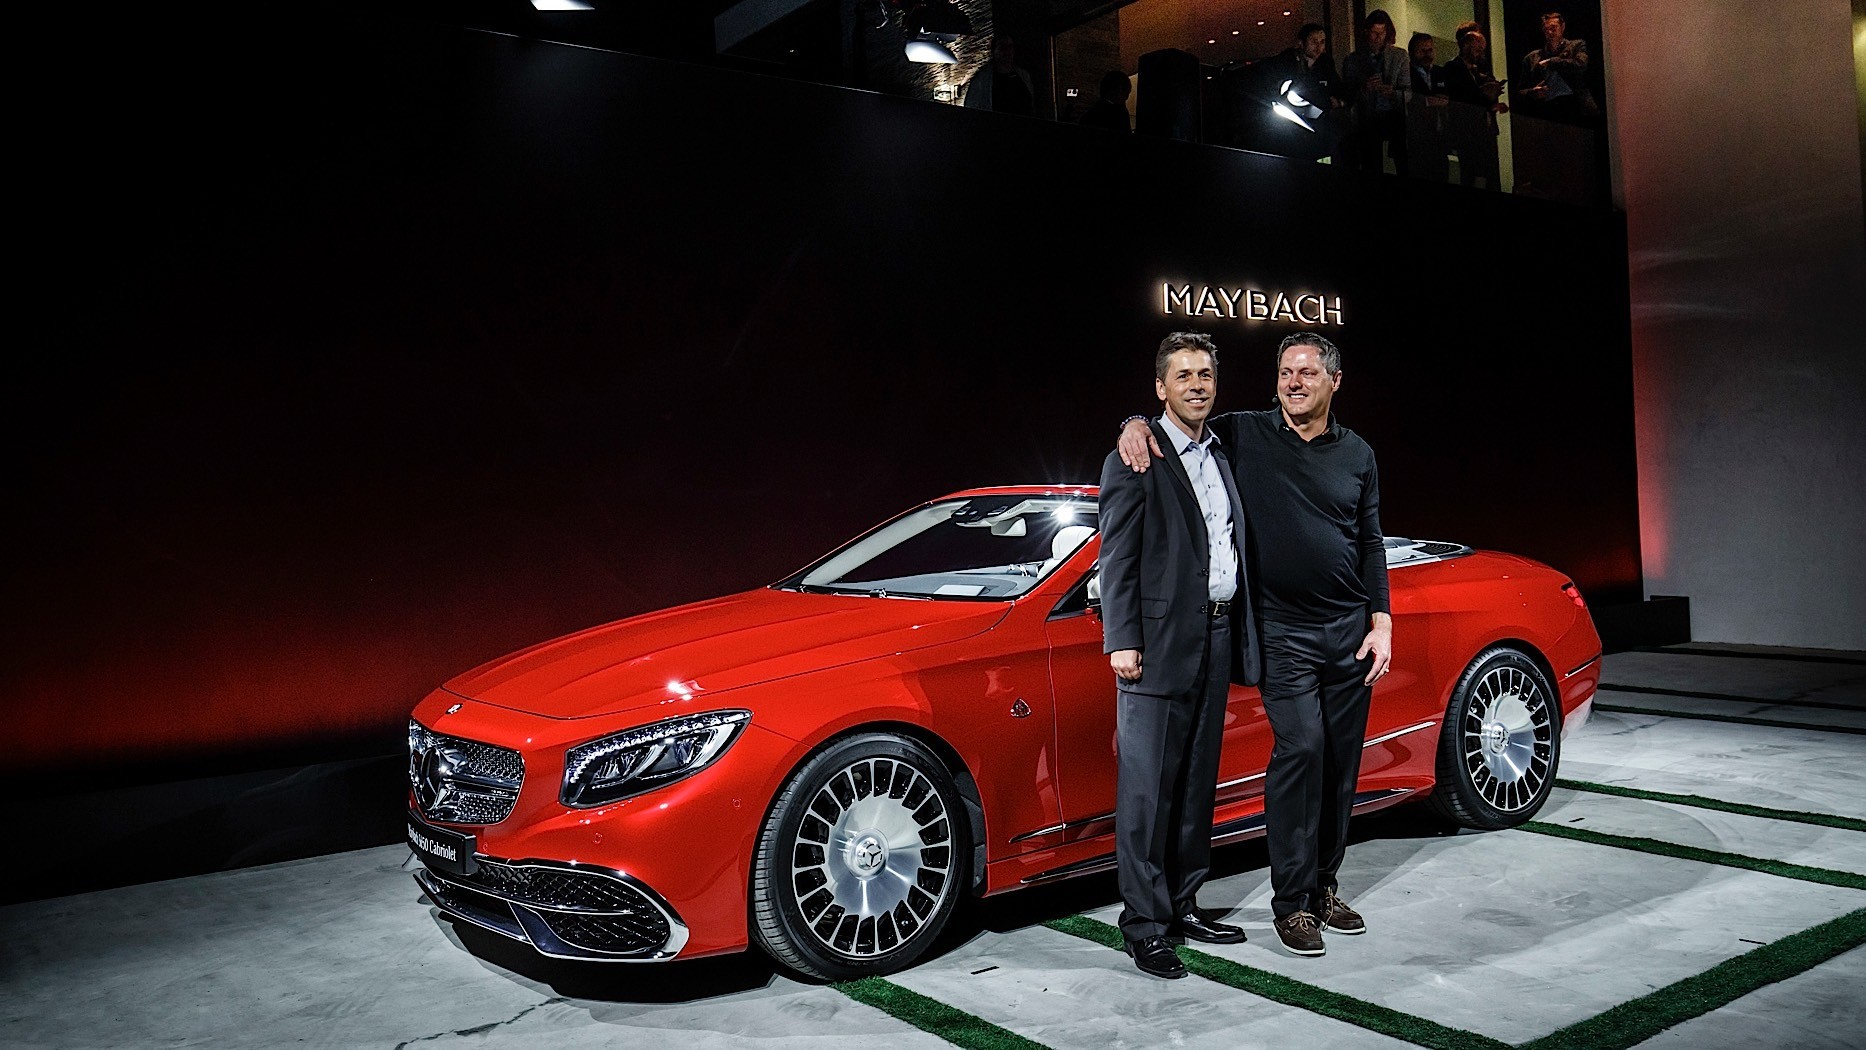 2017 Mercedes Maybach S650 Cabriolet Is A Topless Land